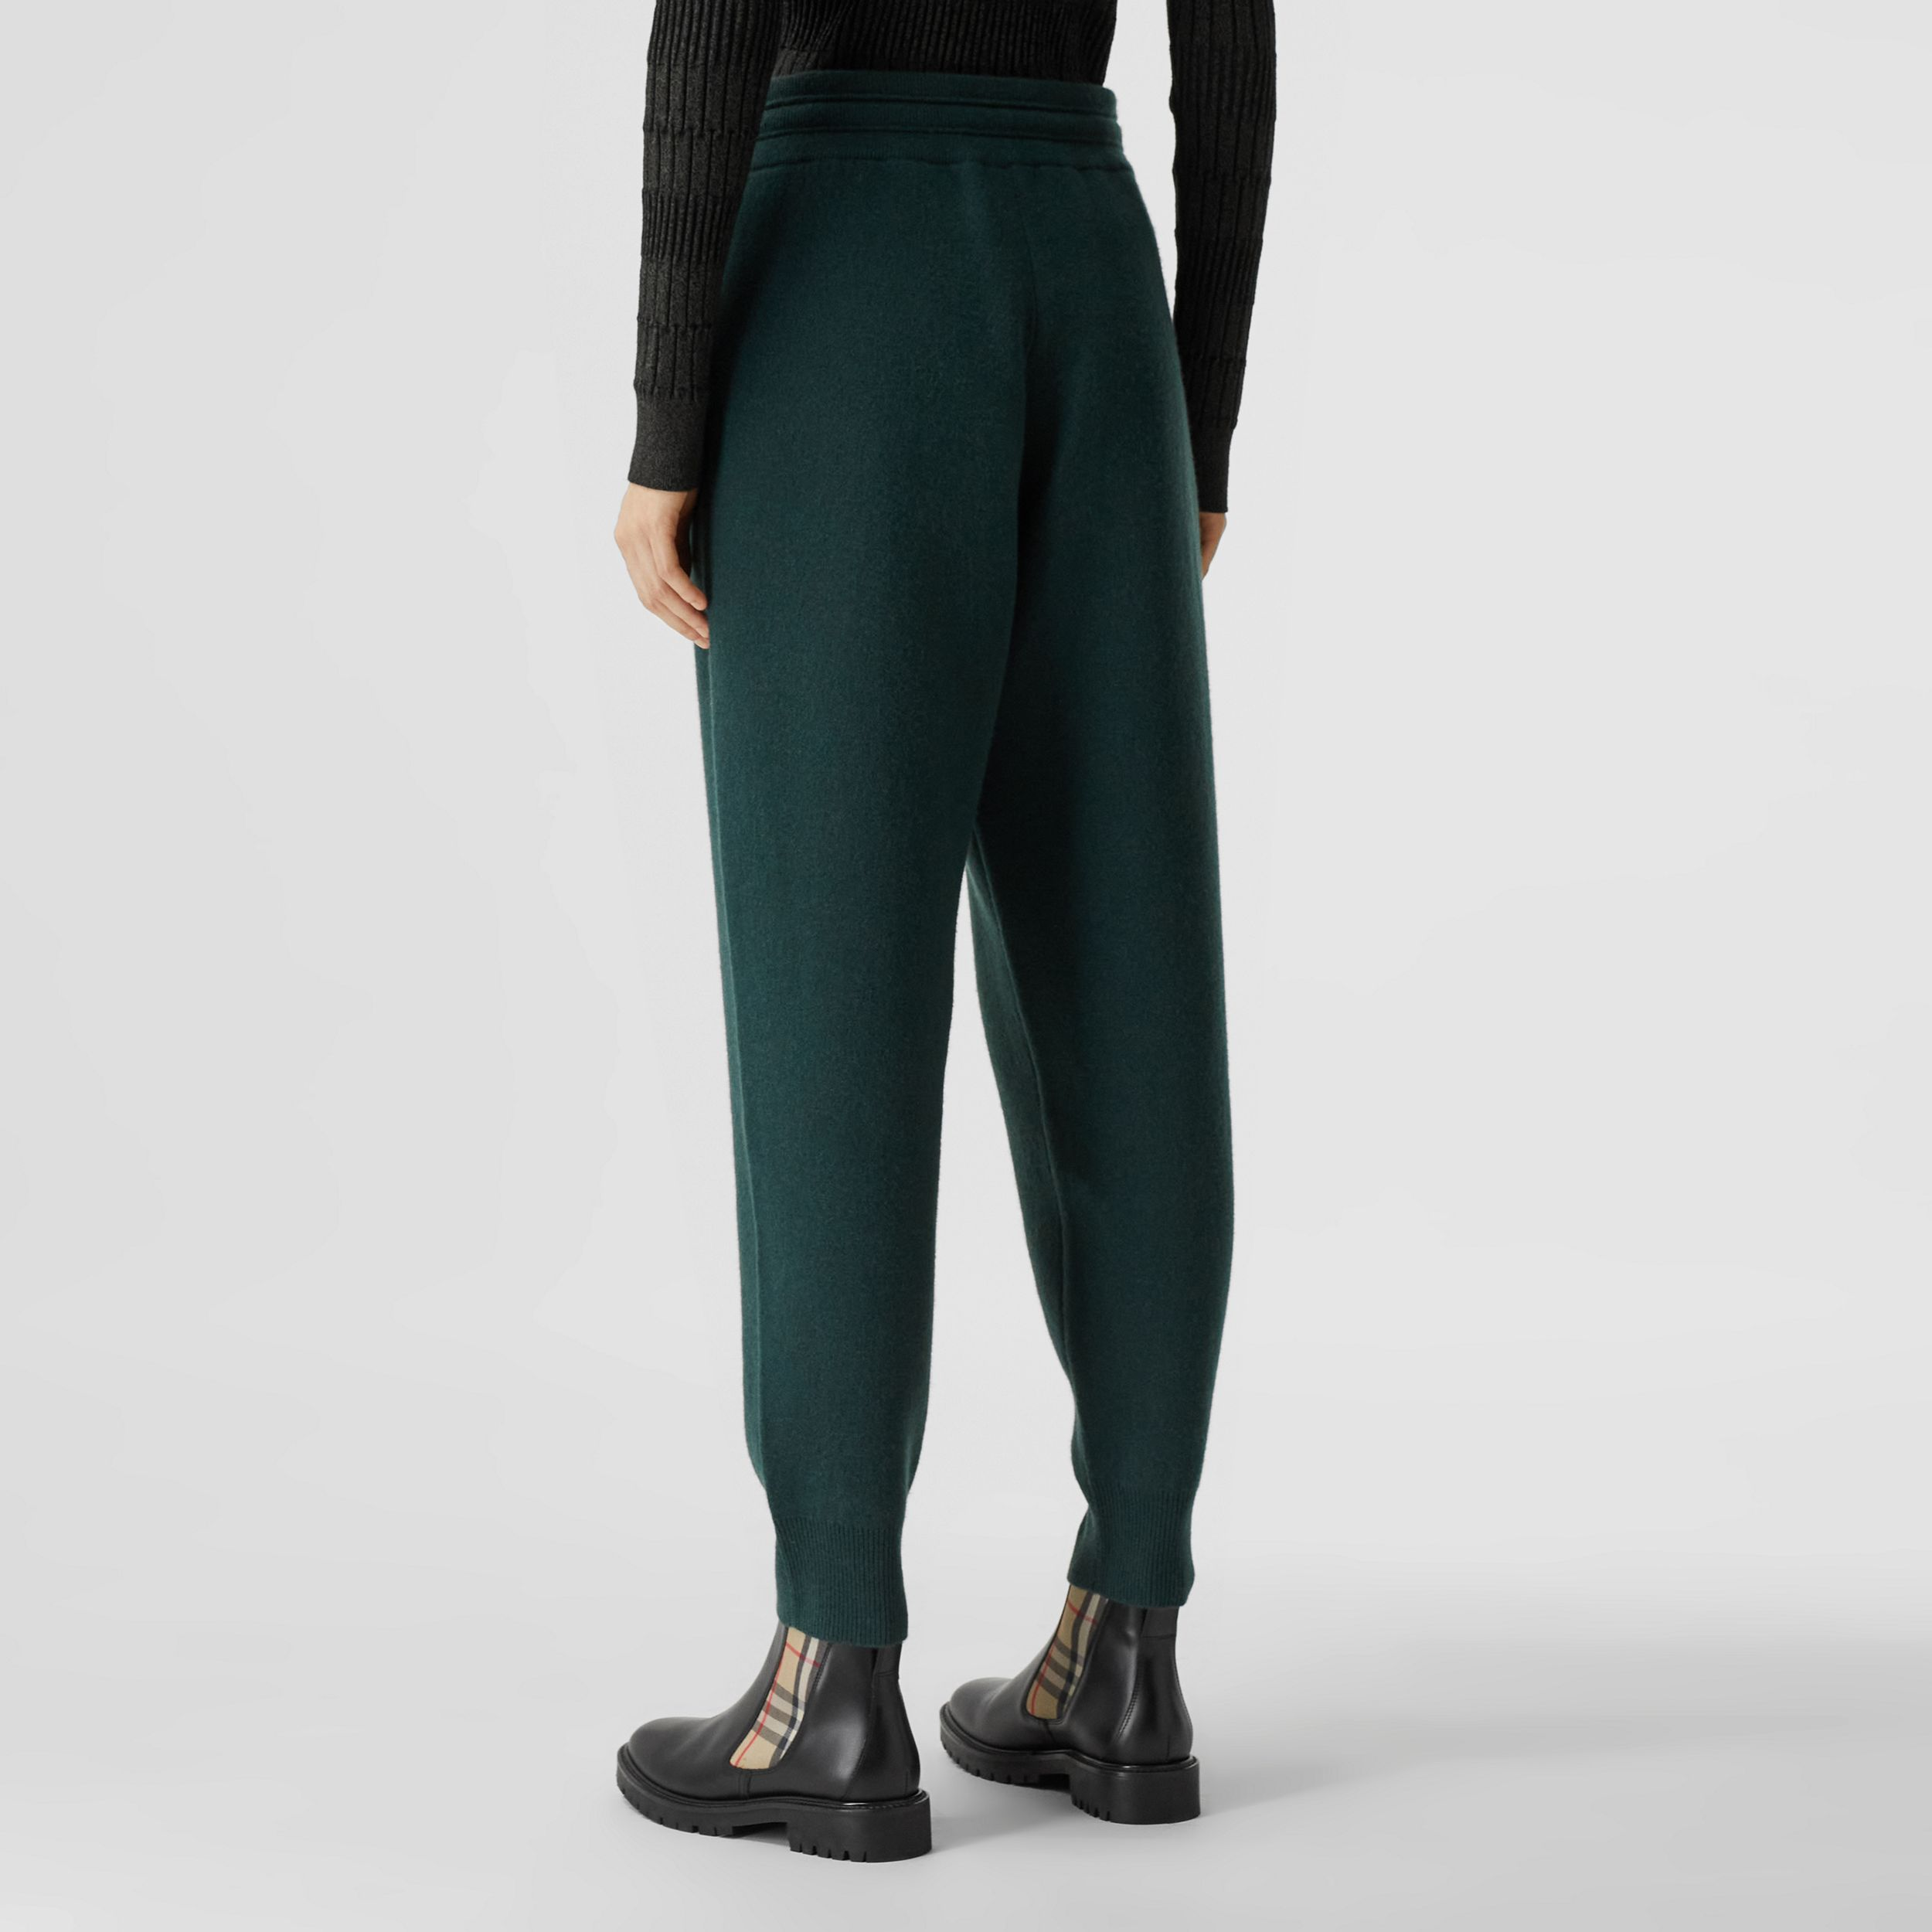 Monogram Motif Cashmere Blend Jogging Pants in Bottle Green - Women | Burberry Hong Kong S.A.R. - 3